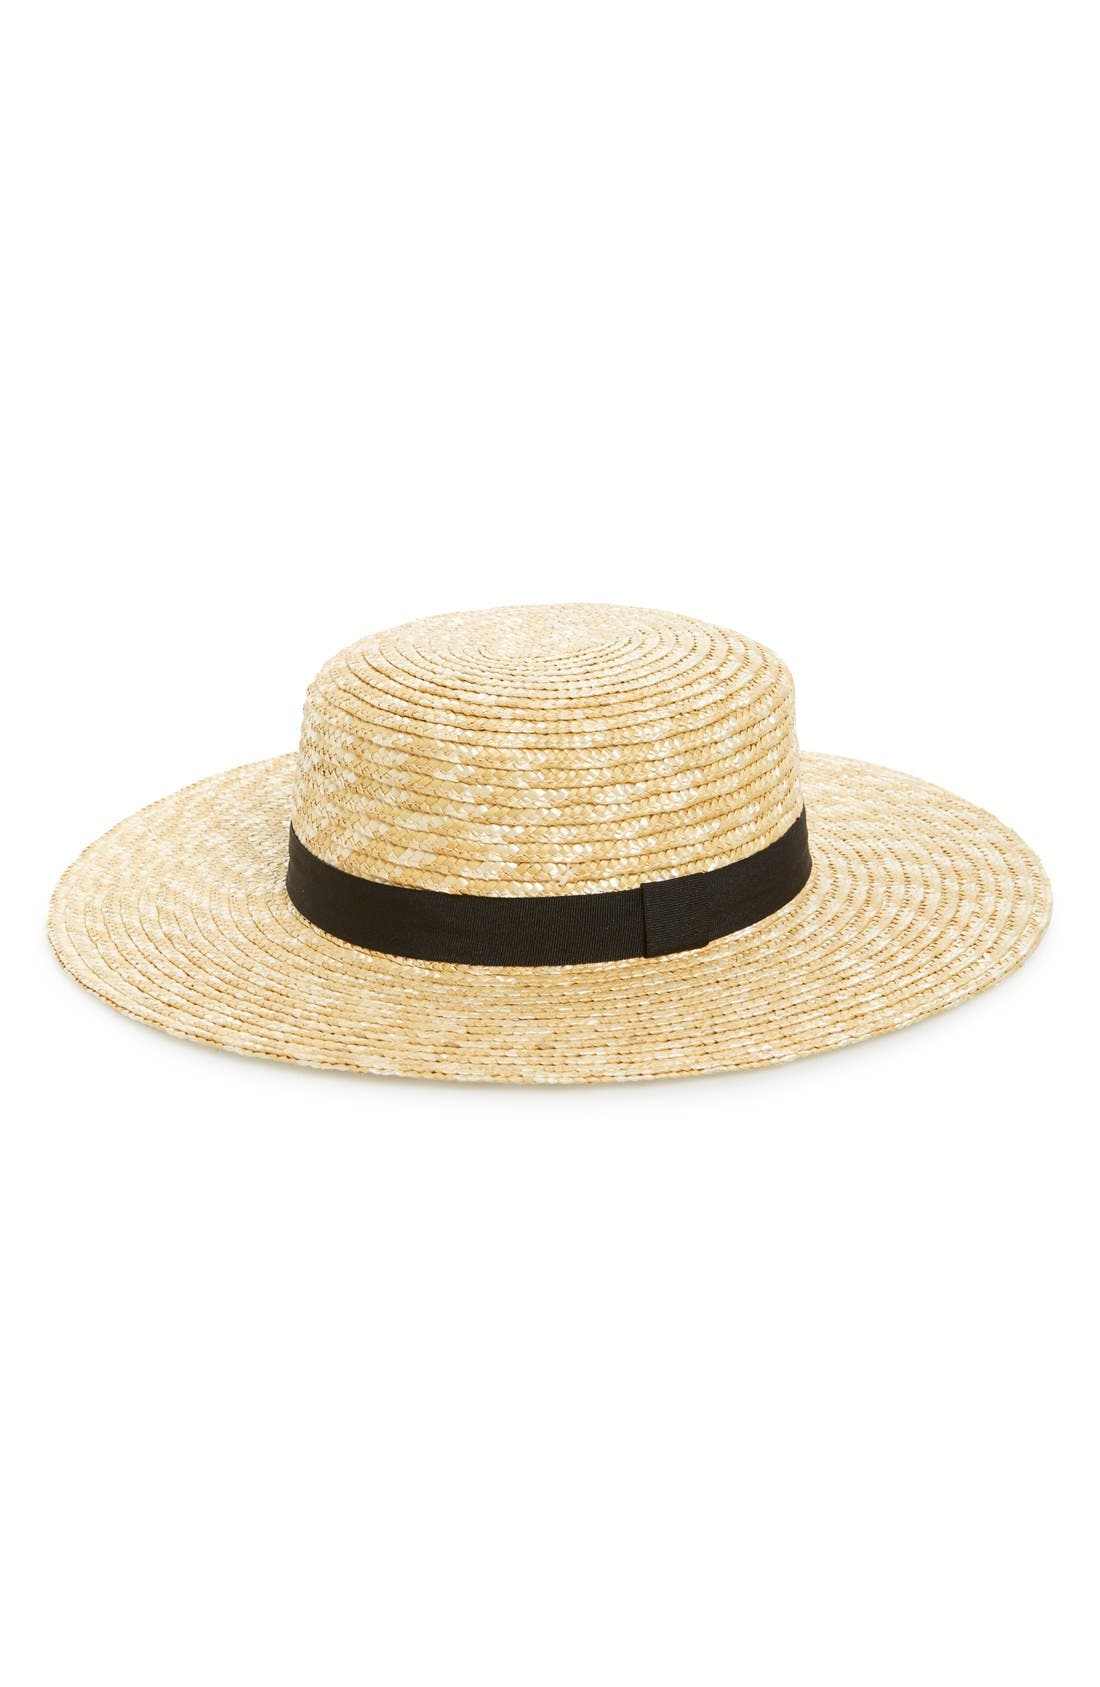 Alternate Image 1 Selected - BP. Straw Boater Hat